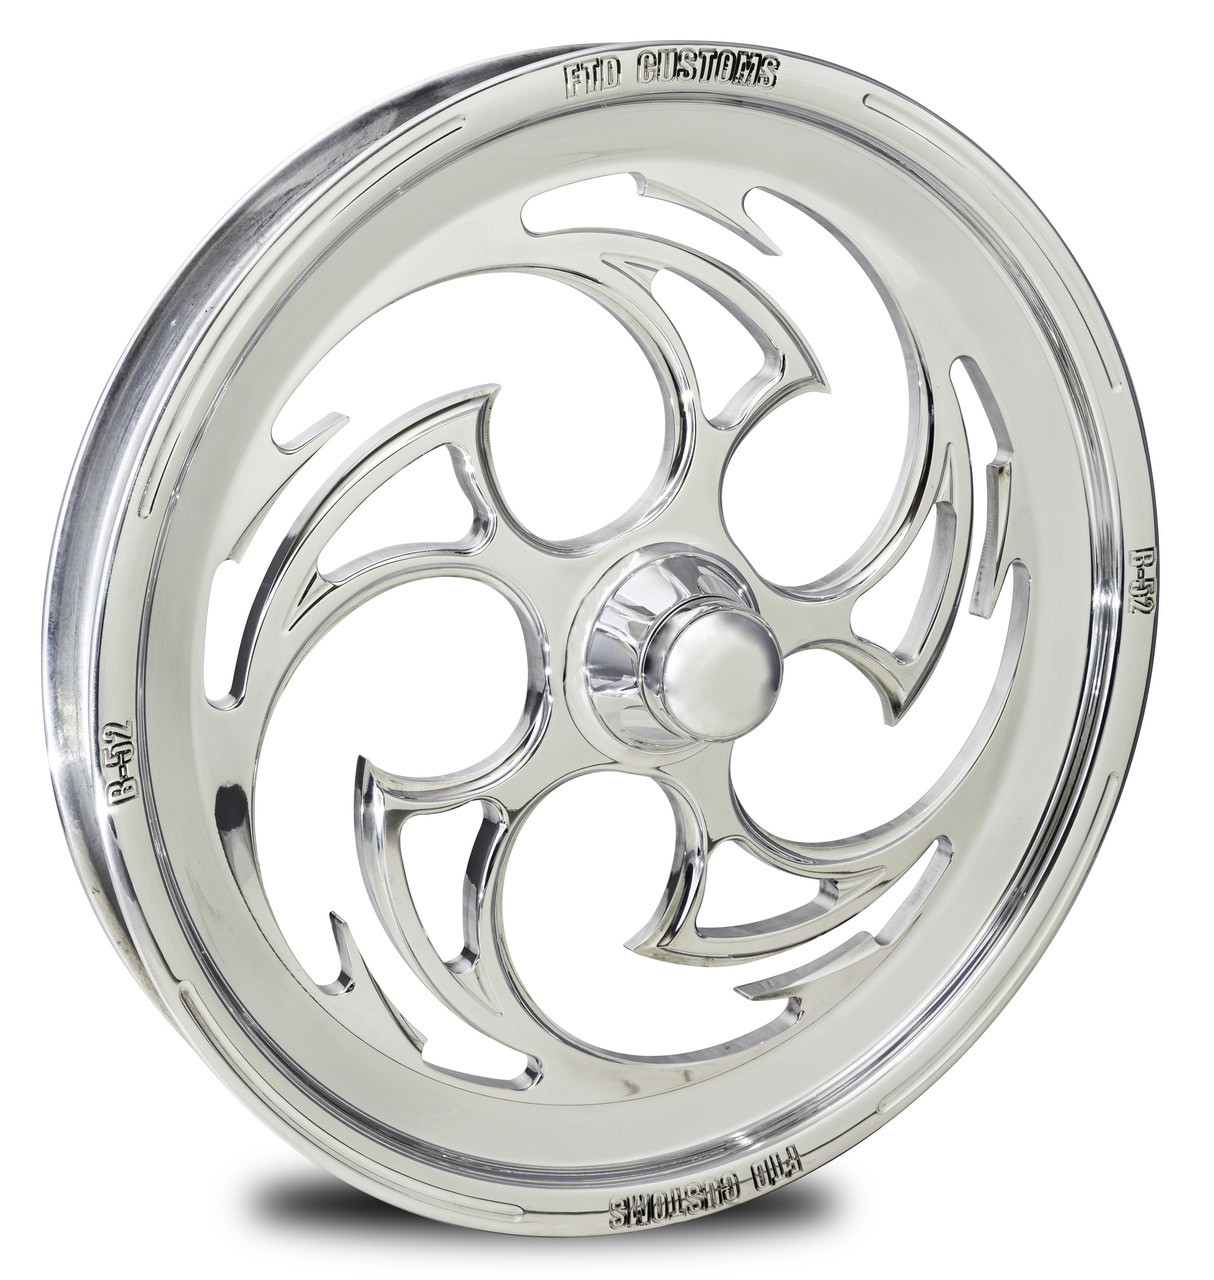 FTD Customs Forged Front Drag Racing Wheel B-52 Polished